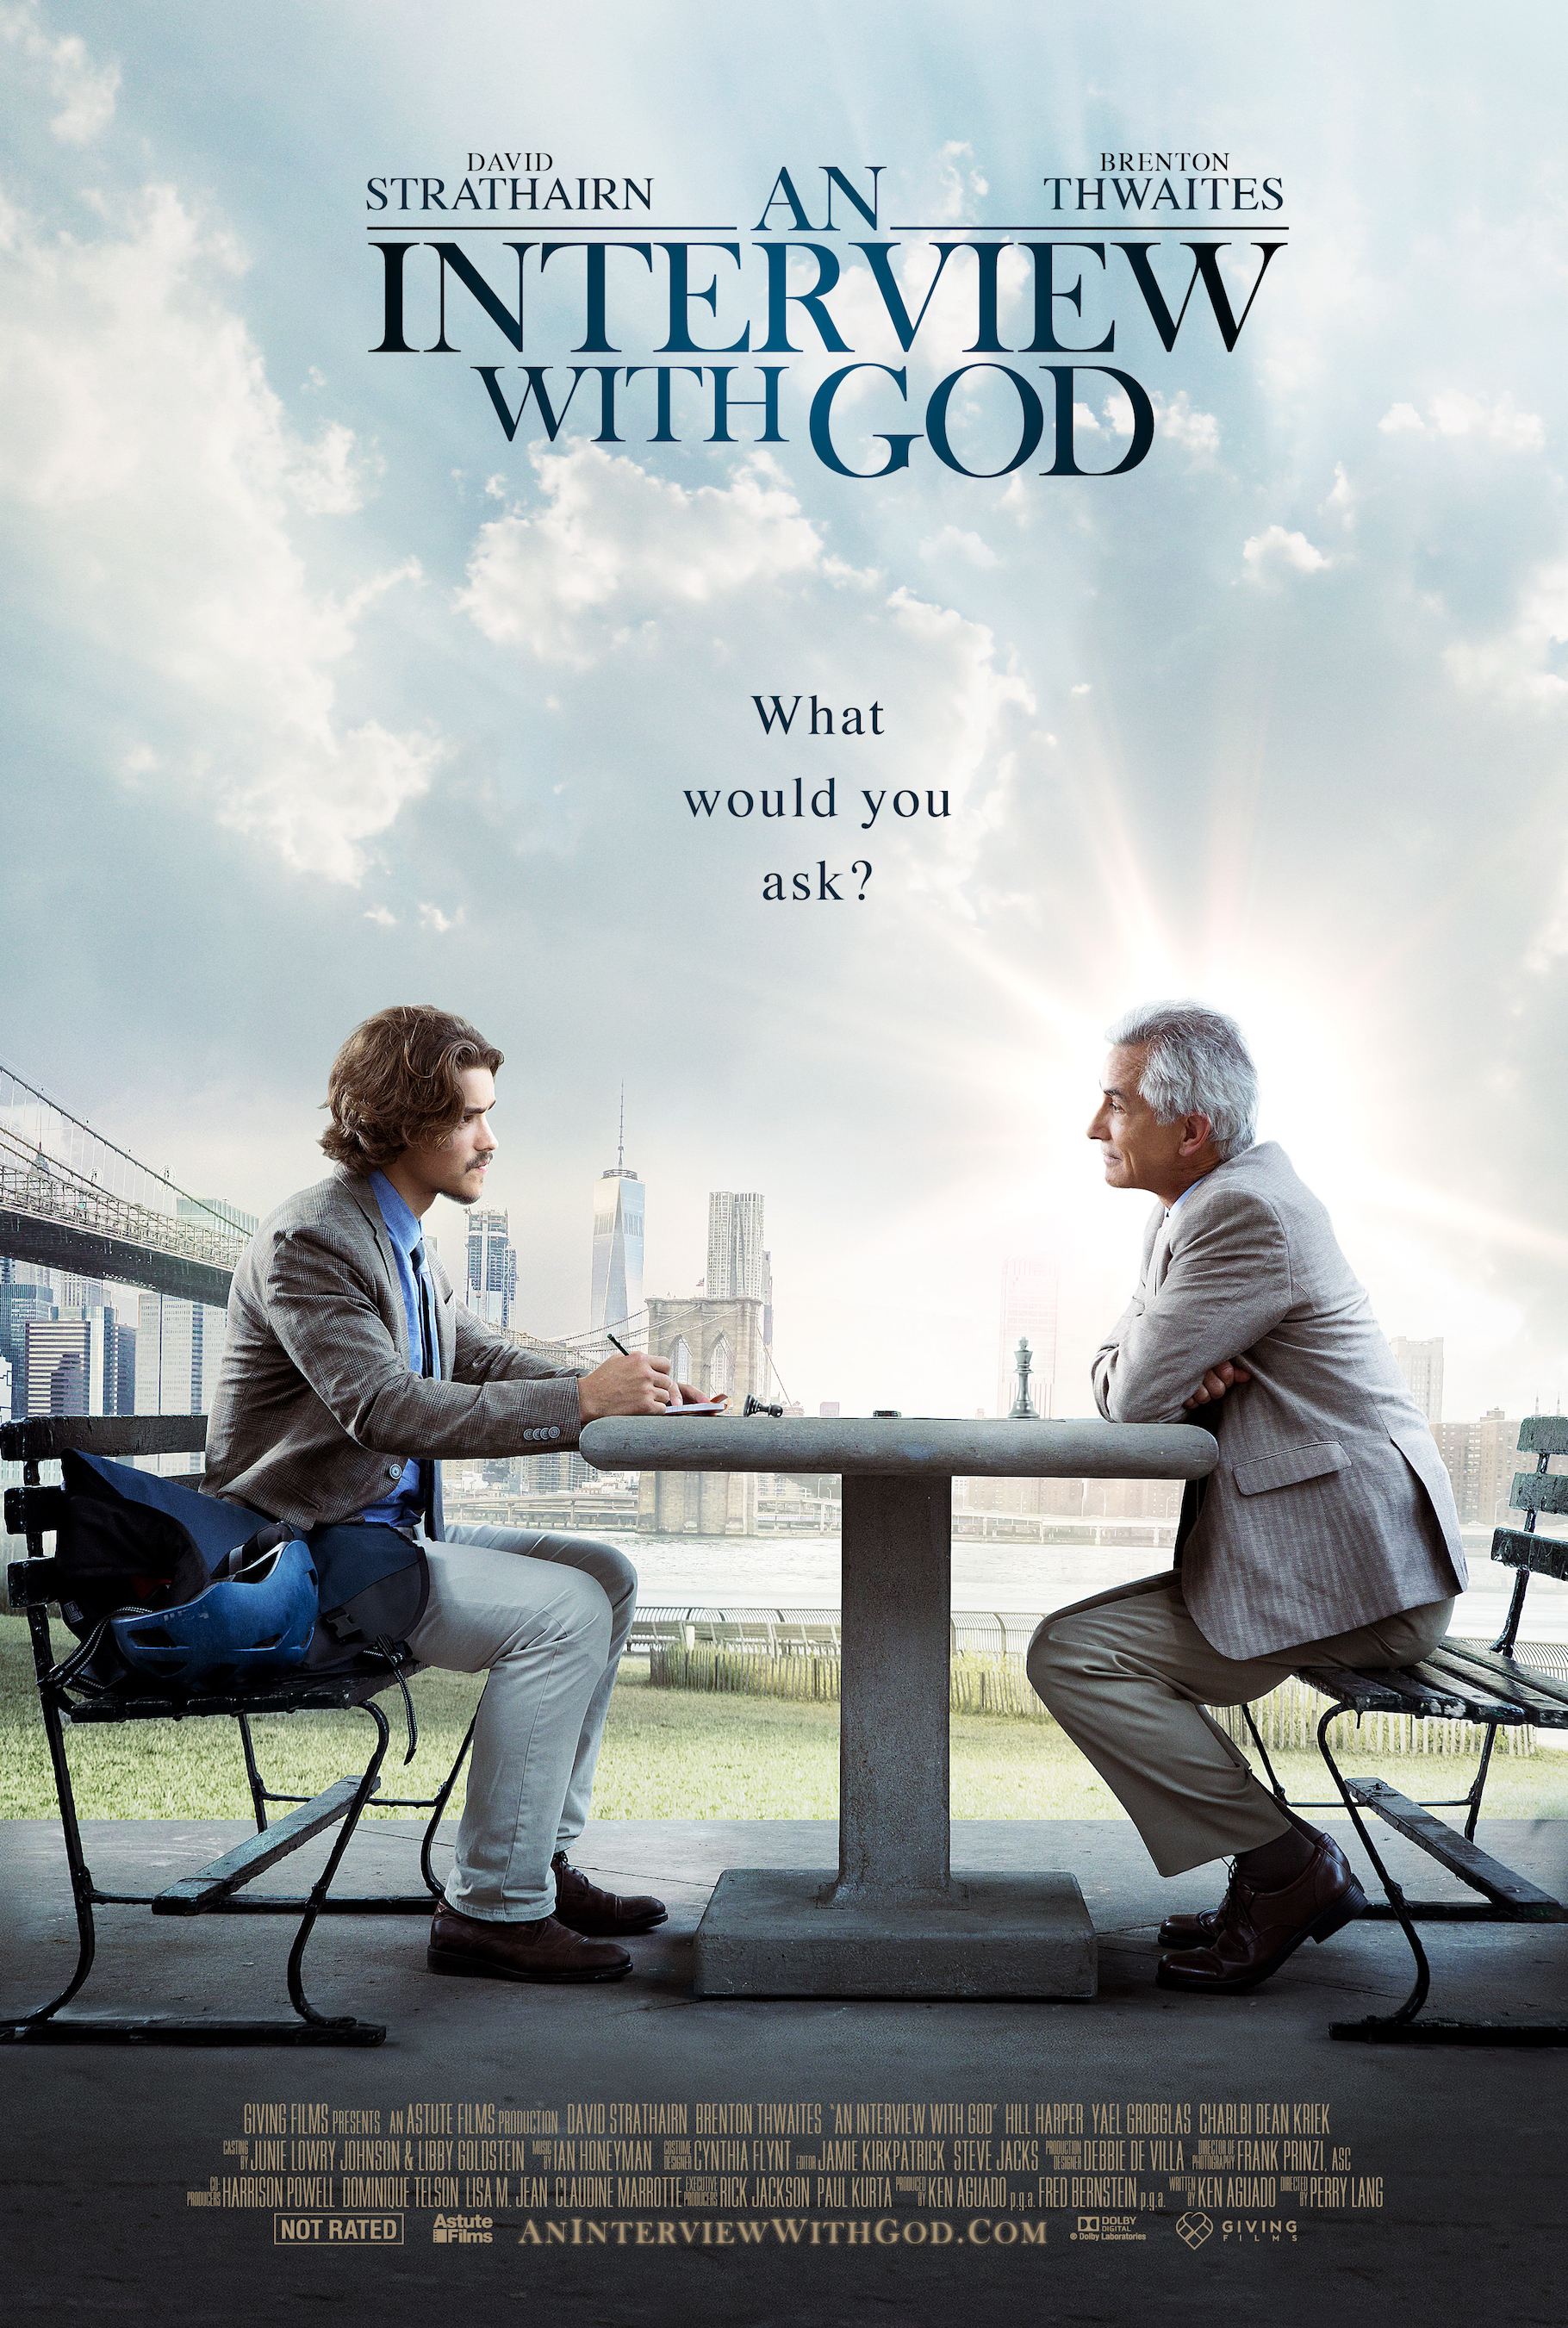 An Interview with God Review - The Christian Film Review